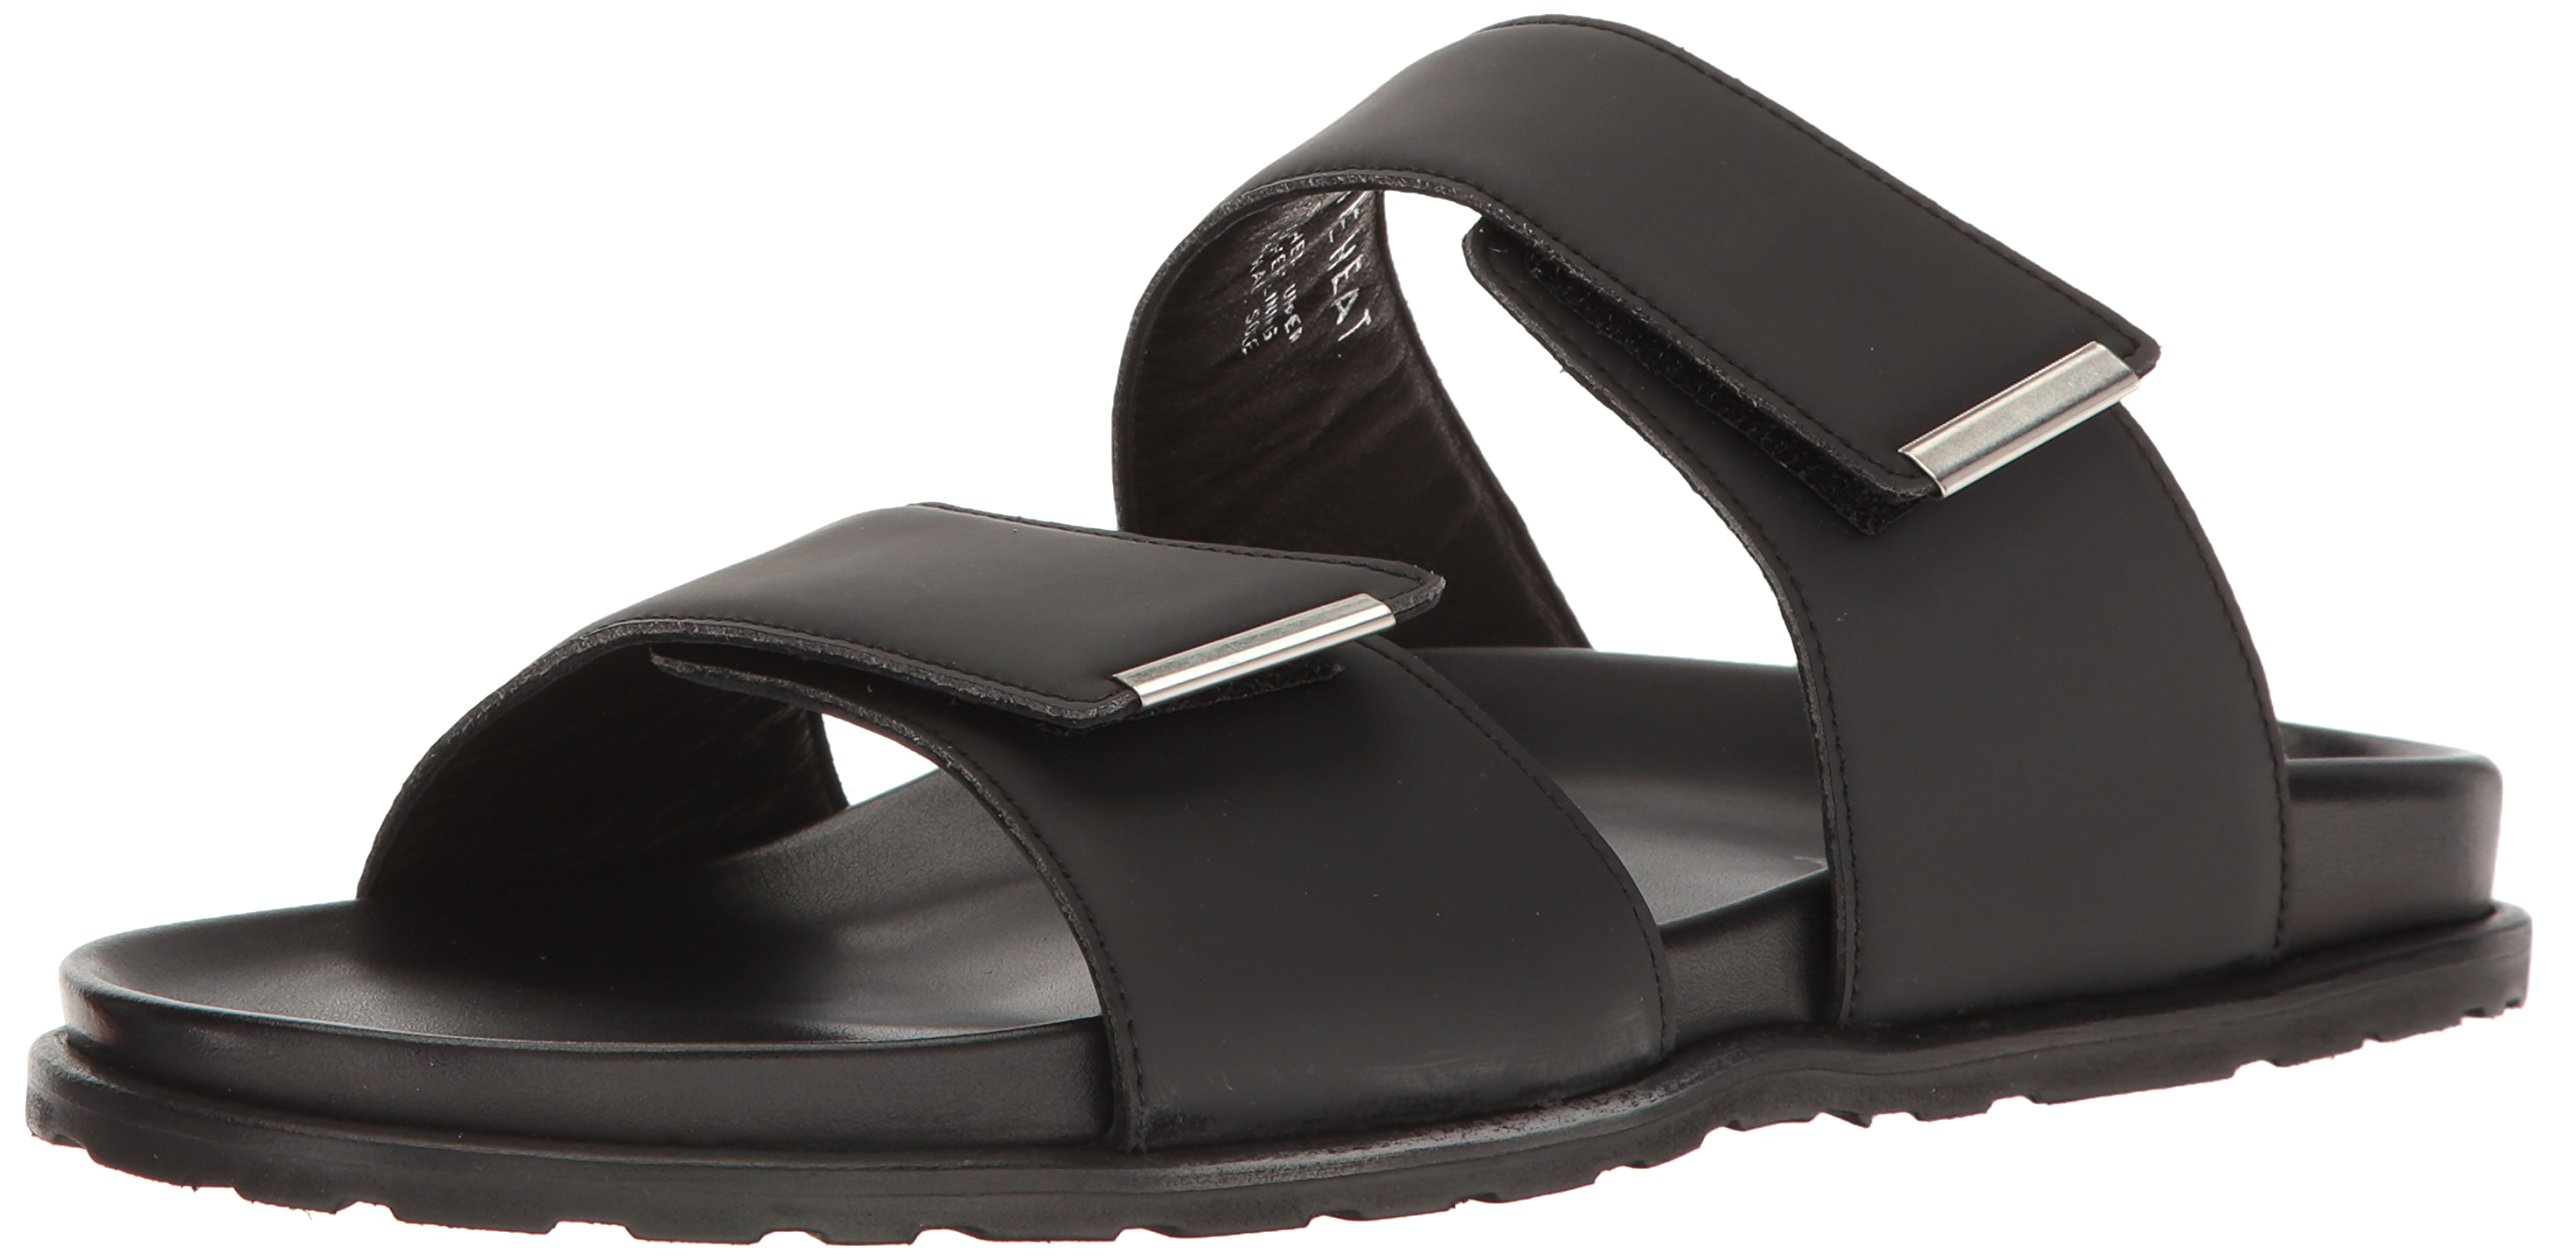 Kenneth Cole New York Men's in The Heat Slide Sandal, Black, 12 M US